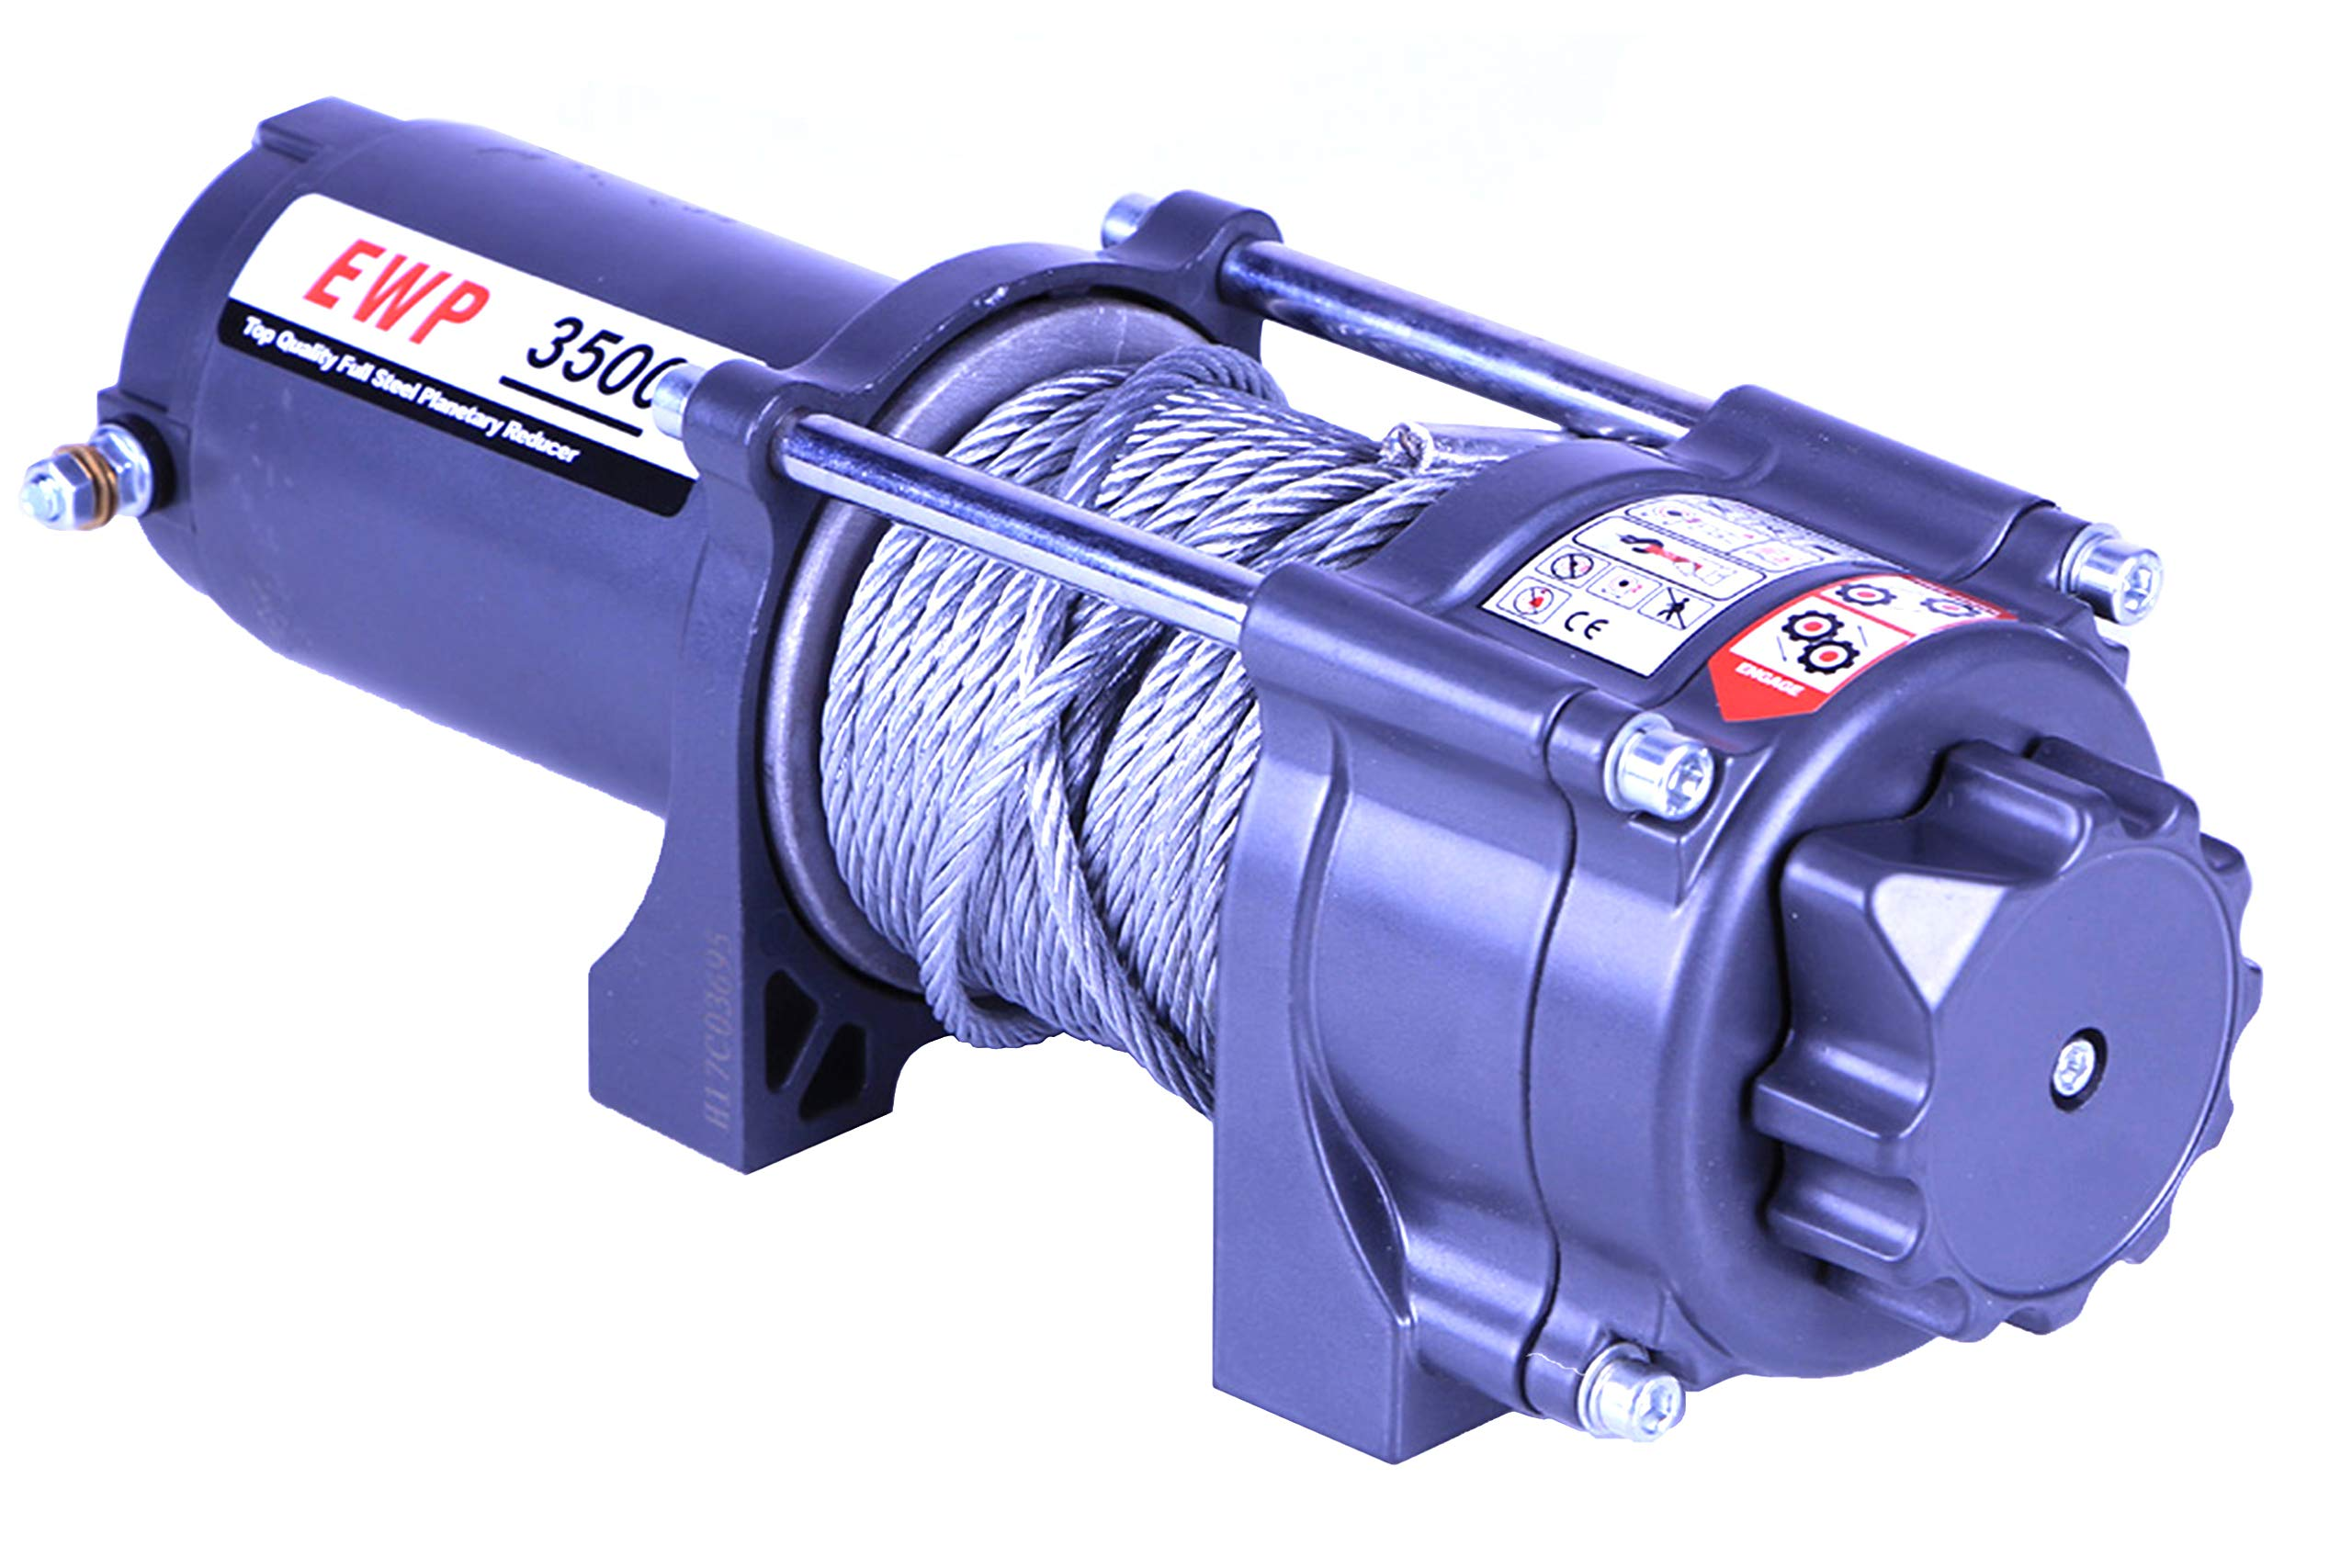 AC-DK 12V 3500lb ATV Winch UTV Winch Electric Winch Set for 4x4 Off Road (3500lb Winch with Cable) by AC-DK